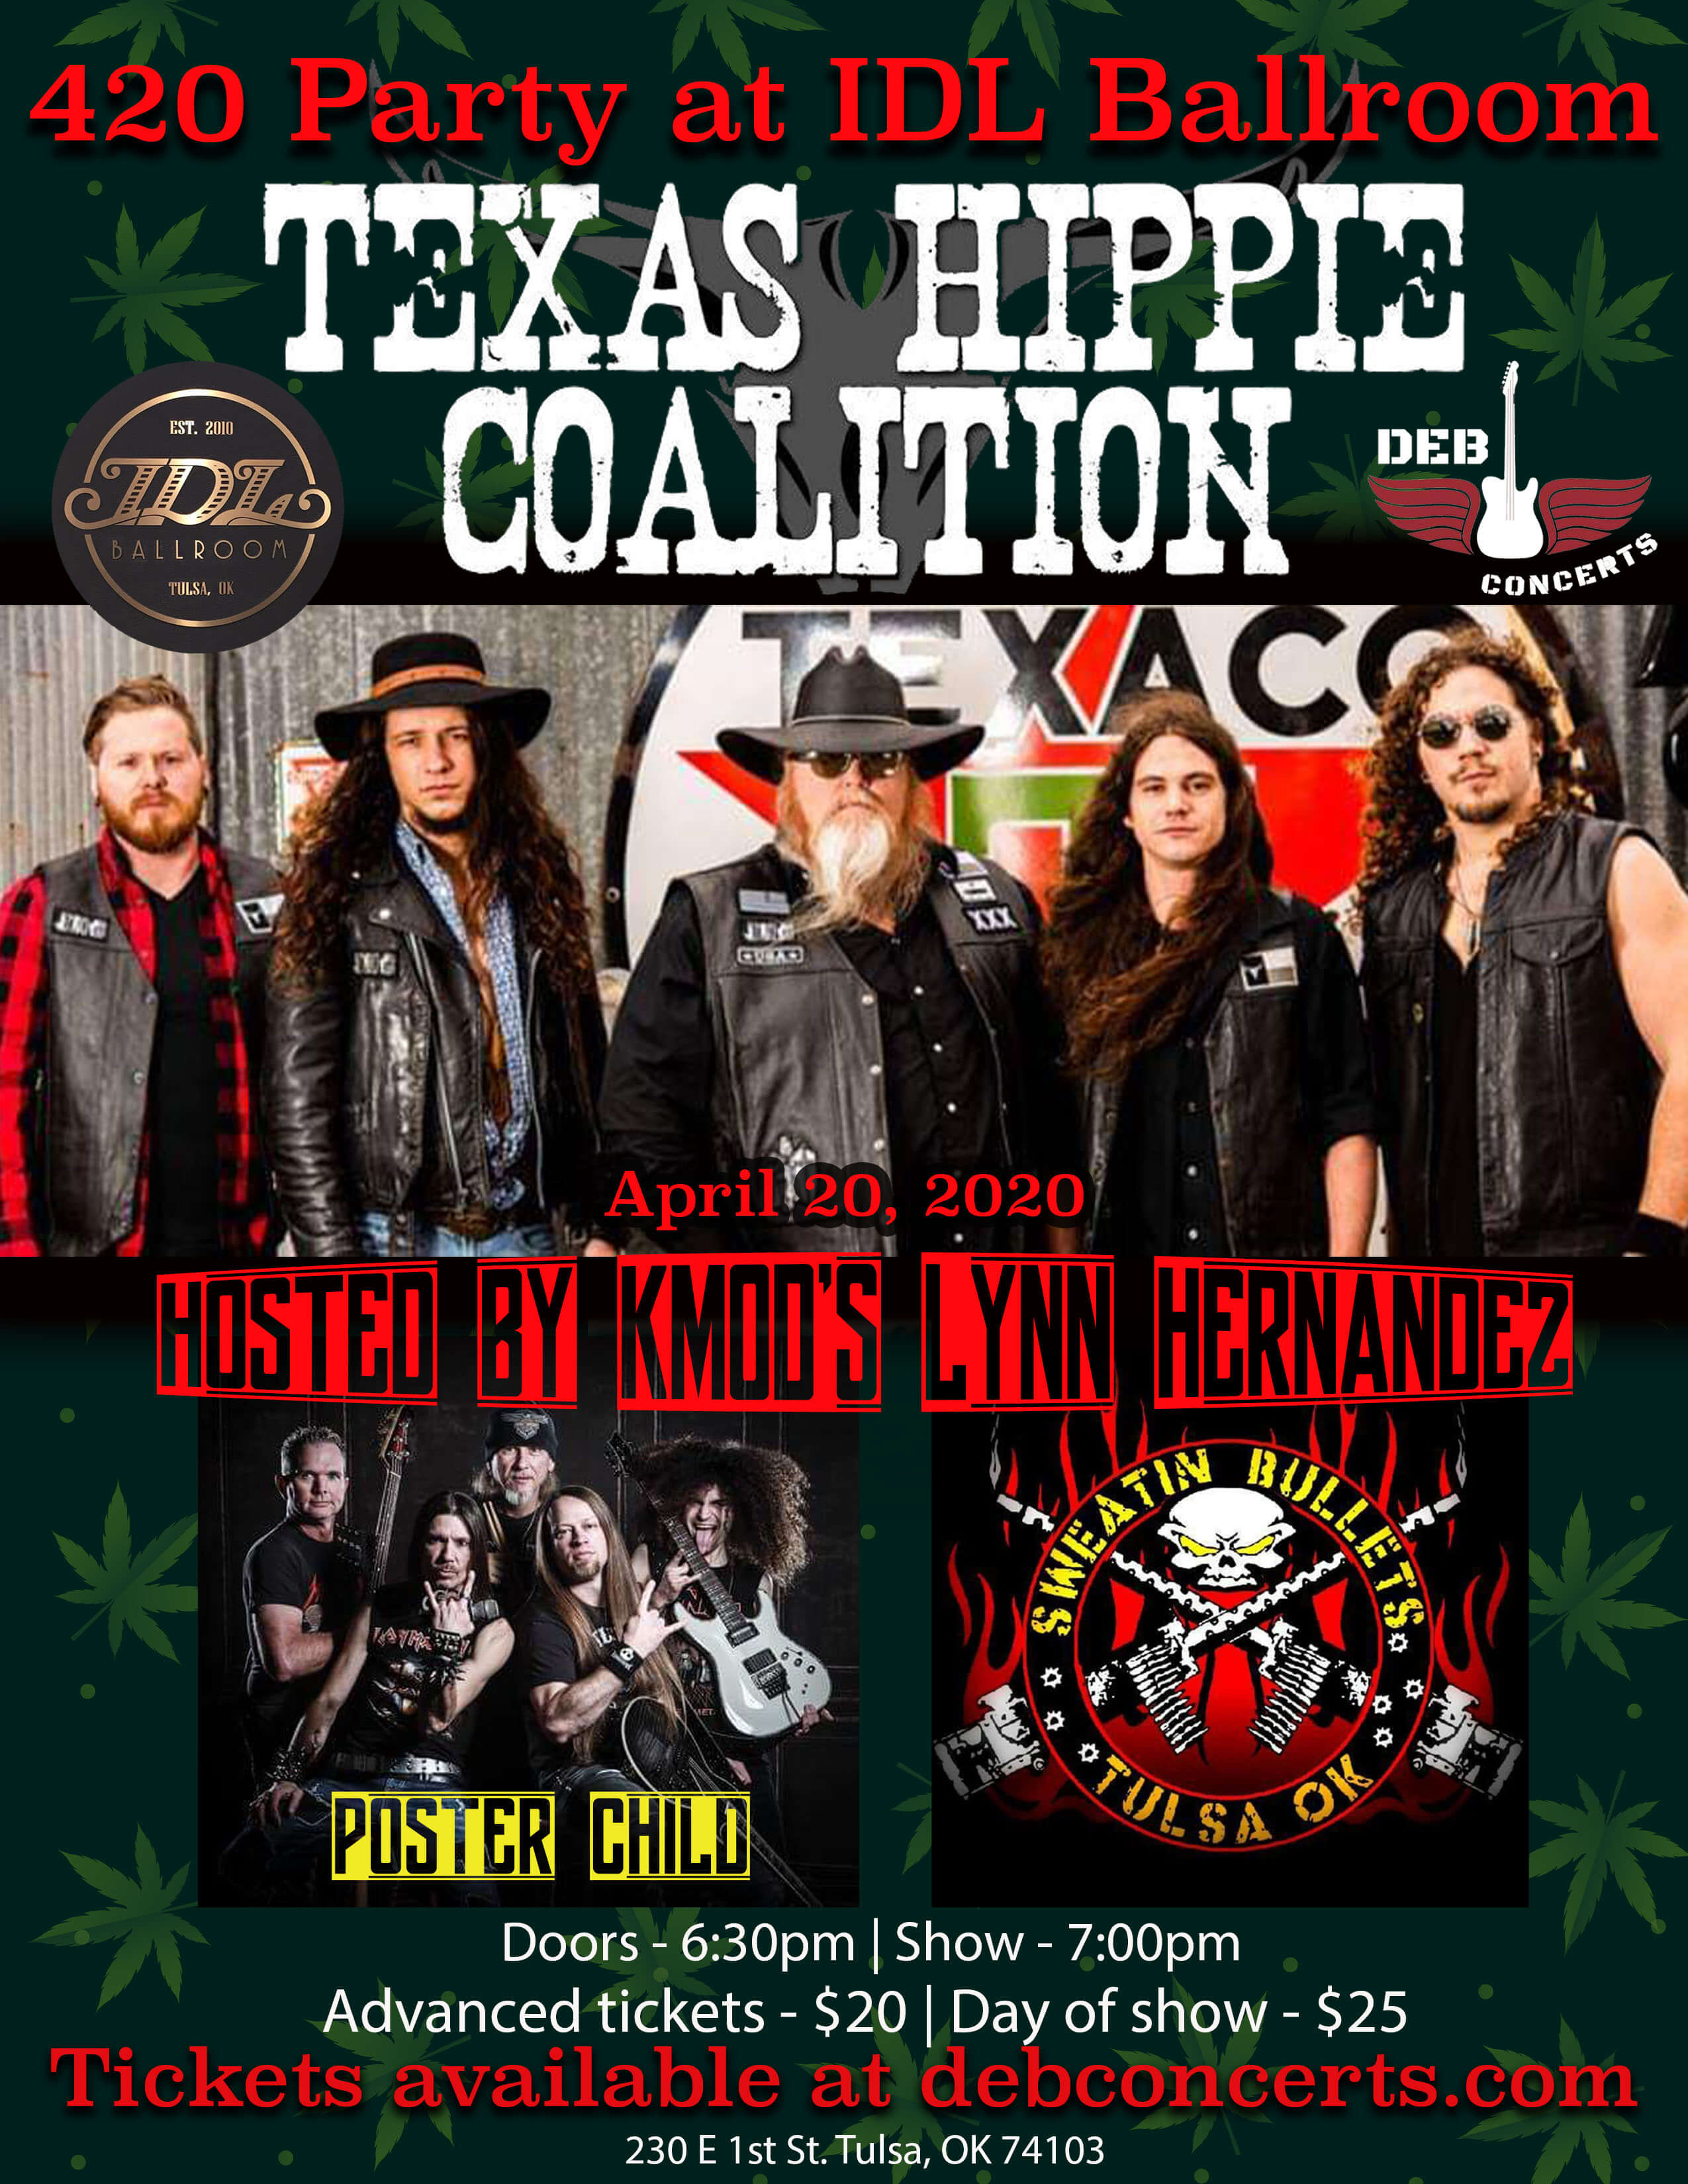 Texas Hippie Coalition w/ special guests Poster Child & Sweatin Bullets